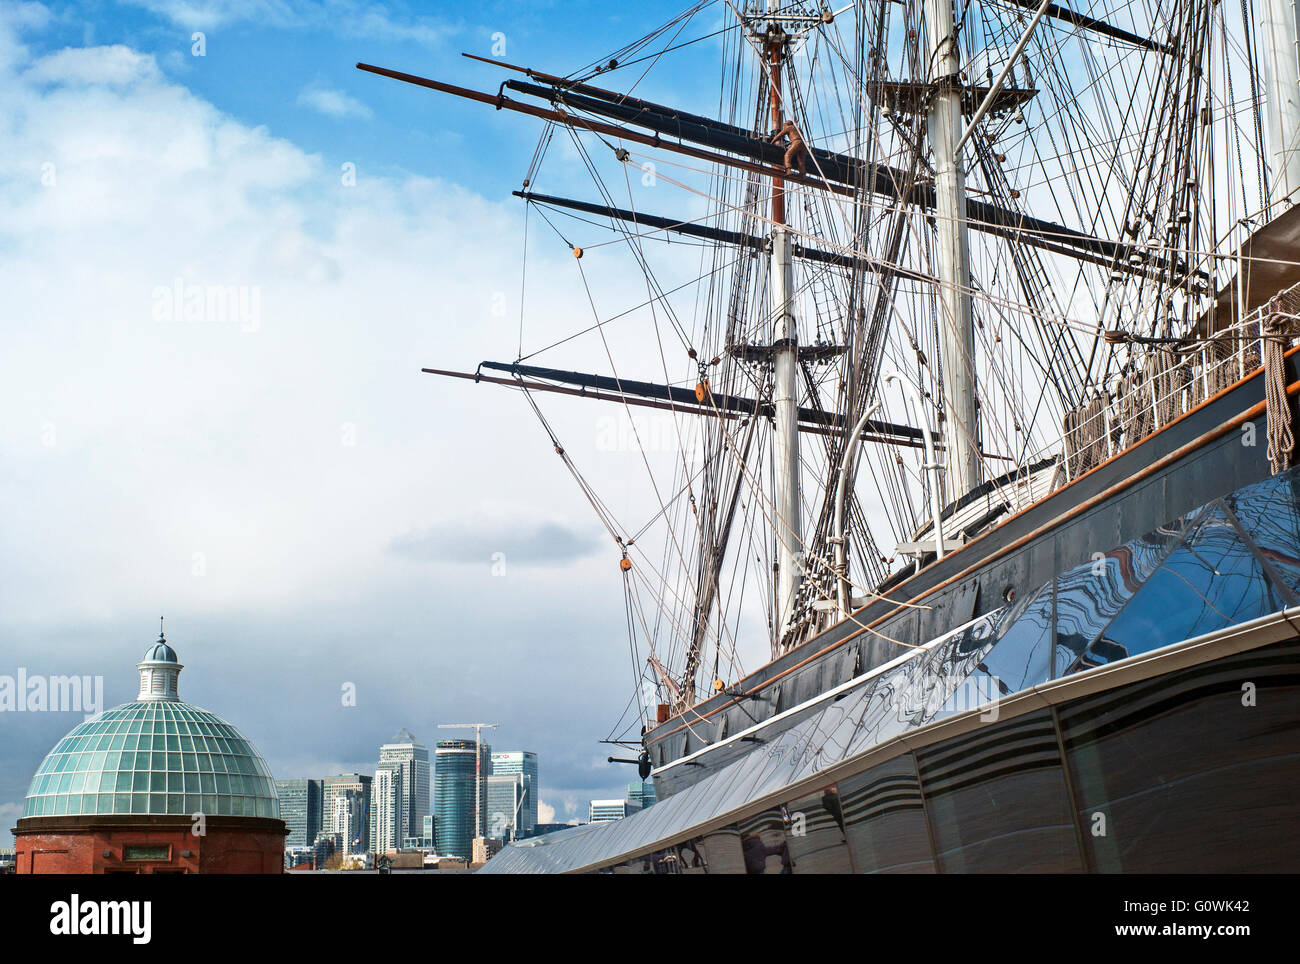 Cutty Sark ship rigging city of London in background Greenwich - Stock Image